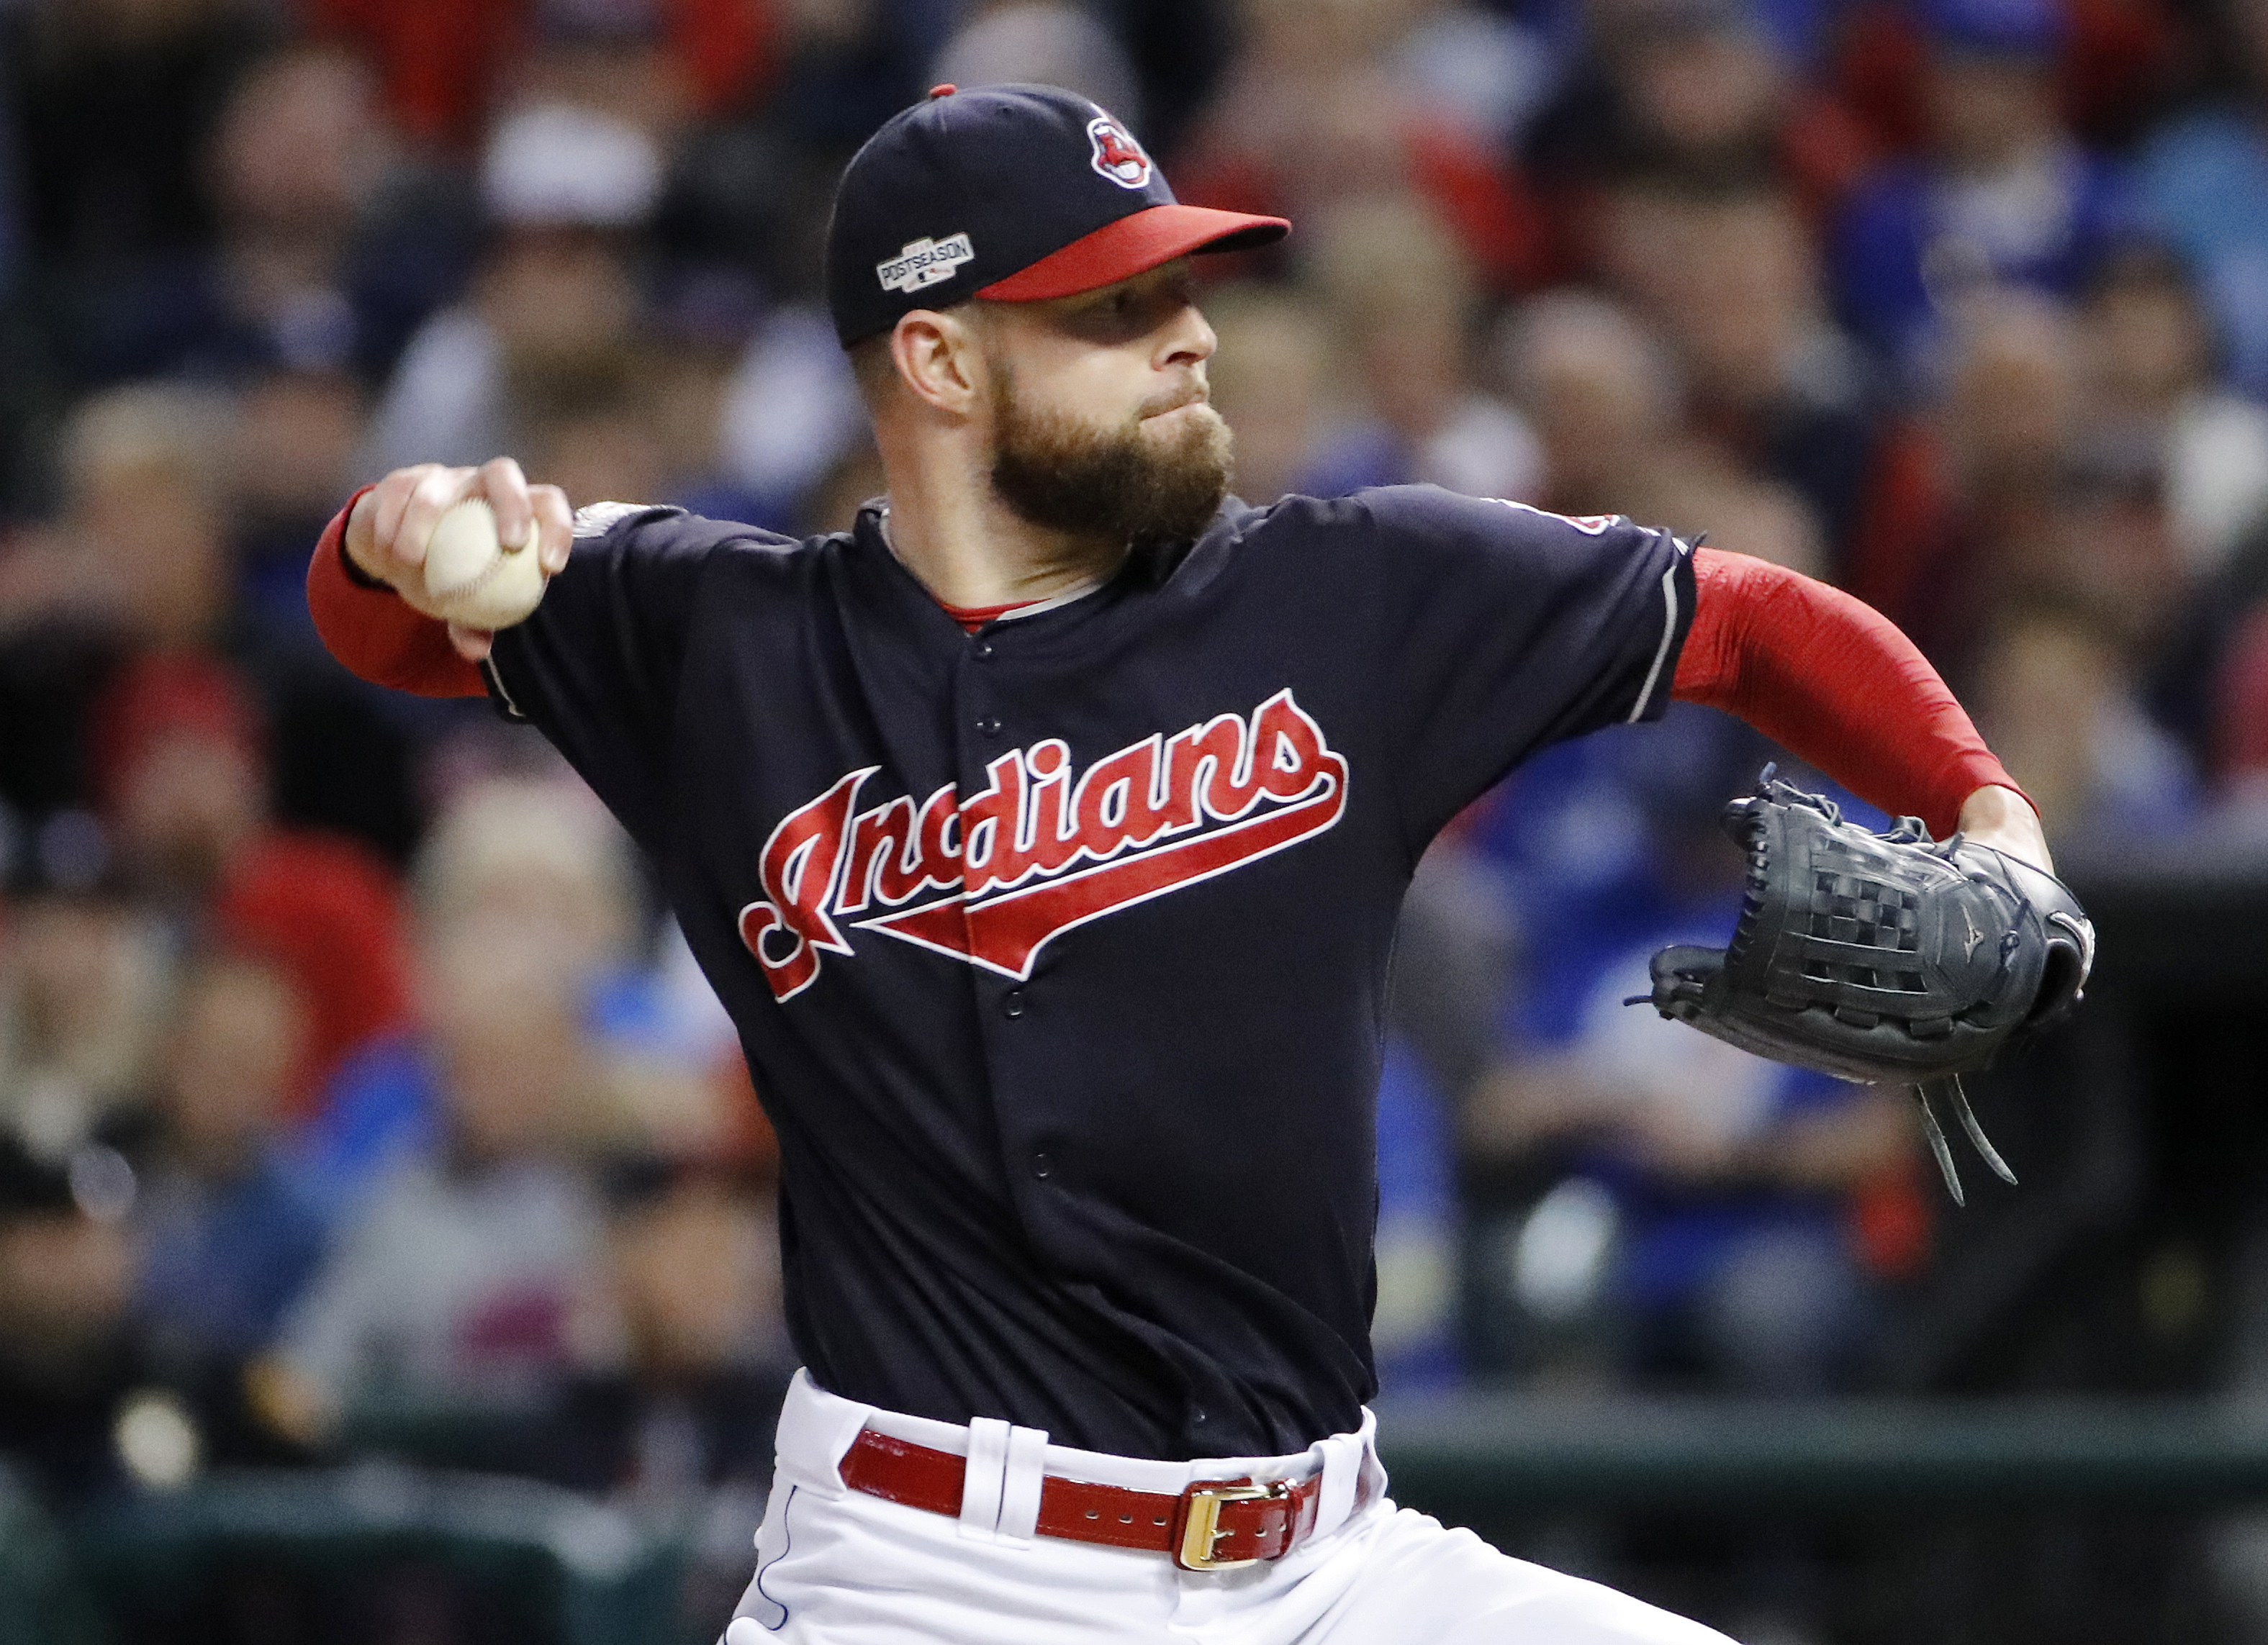 FILE - In this Oct. 14, 2016, file photo, Cleveland Indians starting pitcher Corey Kluber throws against the Toronto Blue Jays during Game 1 of baseball's American League Championship Series in Cleveland. Kluber, who confounded Chicagos hitters in Game 1